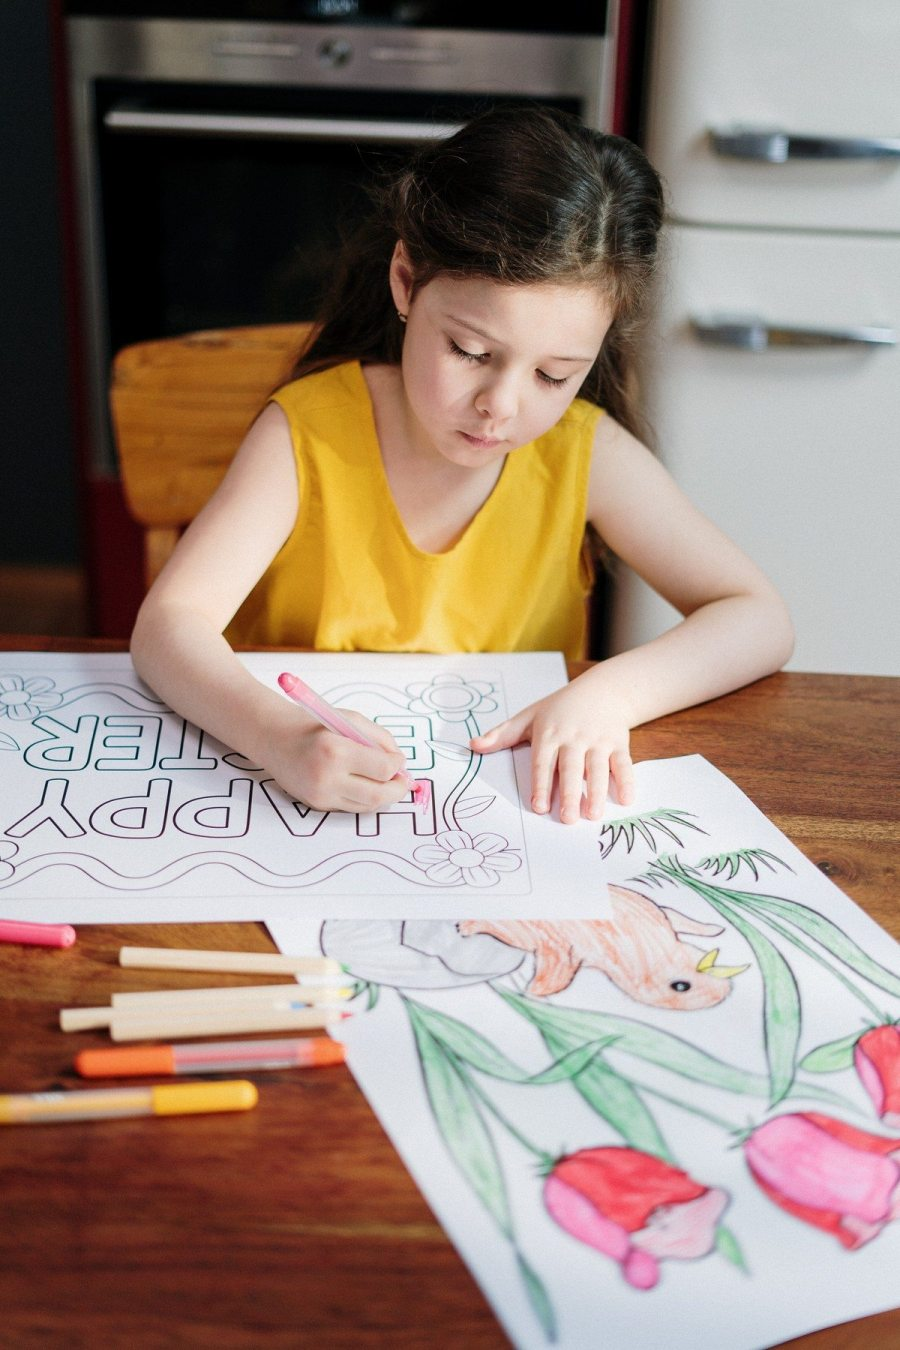 That switch in coloring skills is a milestone for children because it shows that their motor skills and cognitive skills are developing.